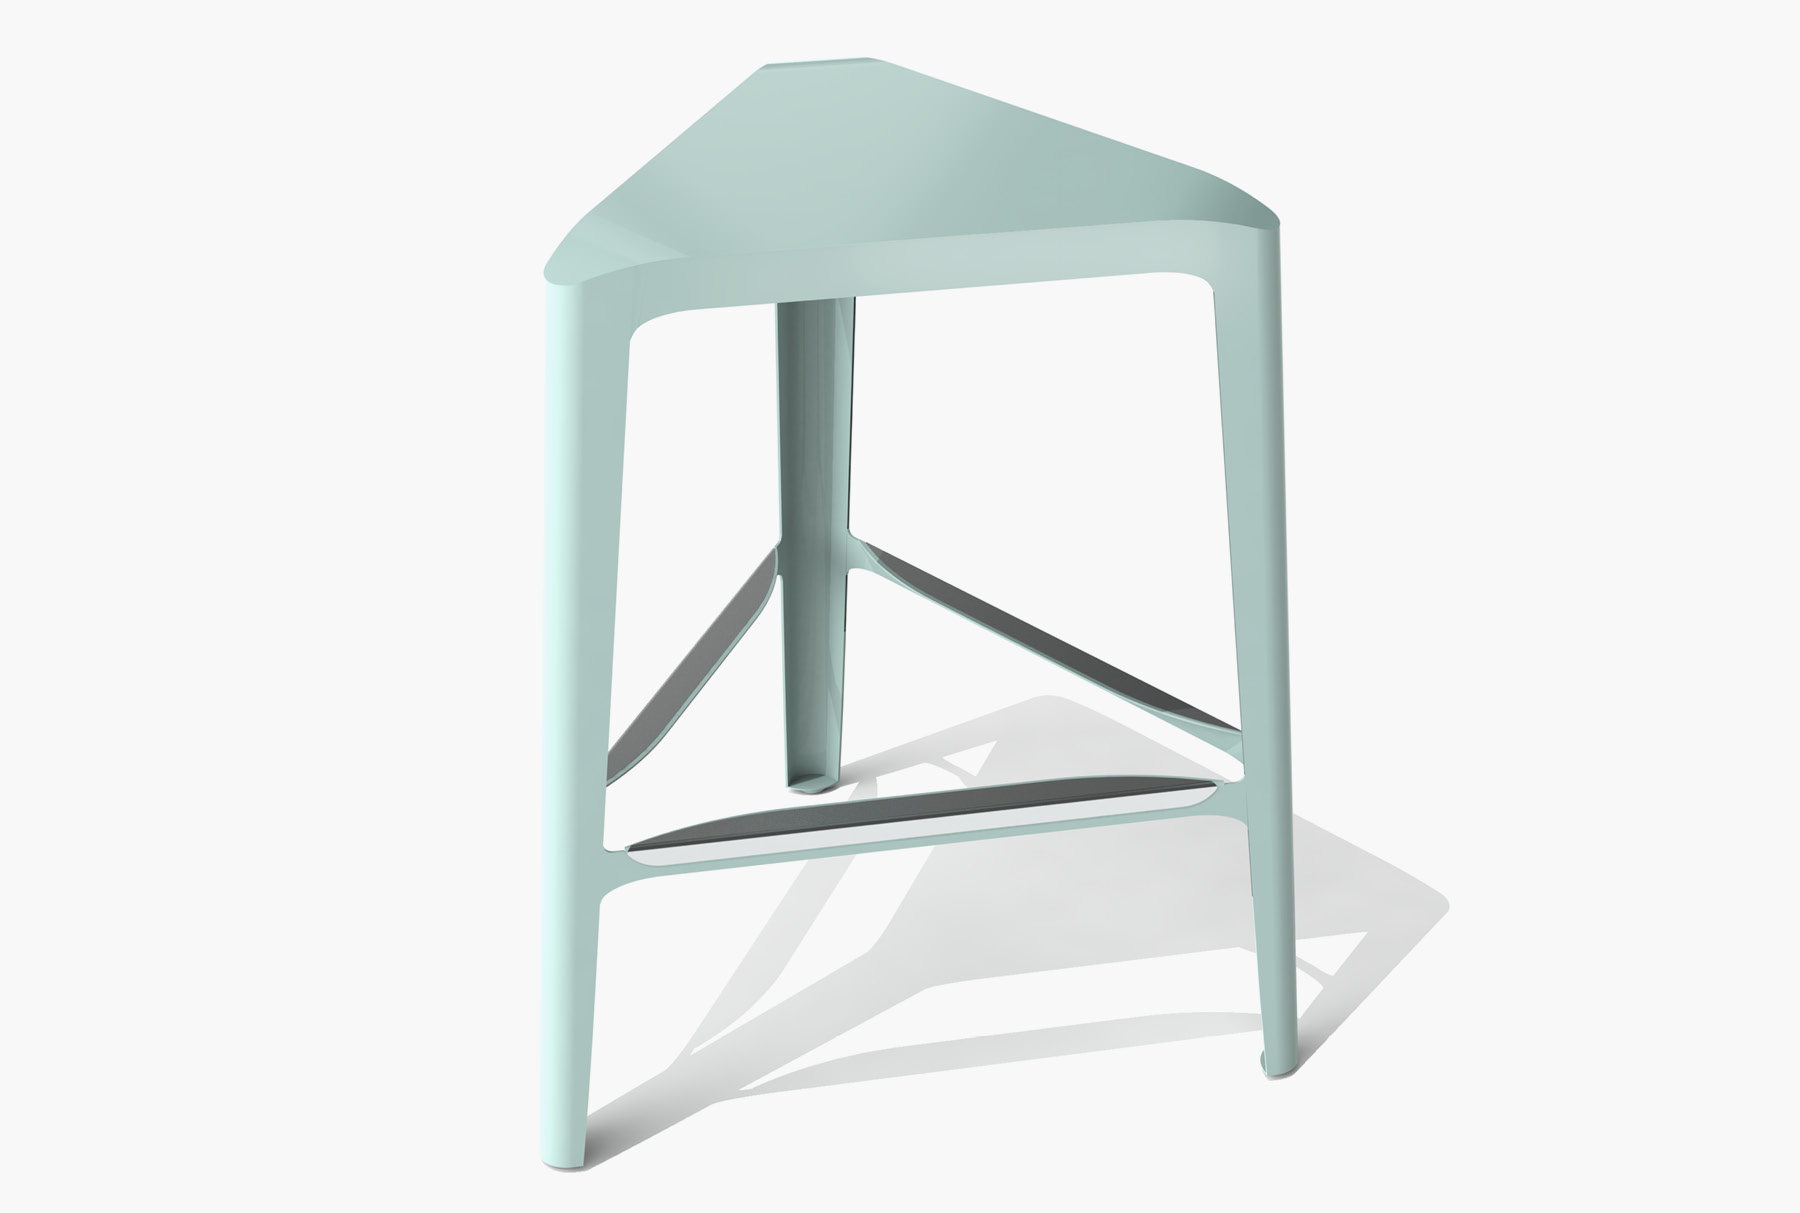 Arktura Clic Mid Stool in Sea Green